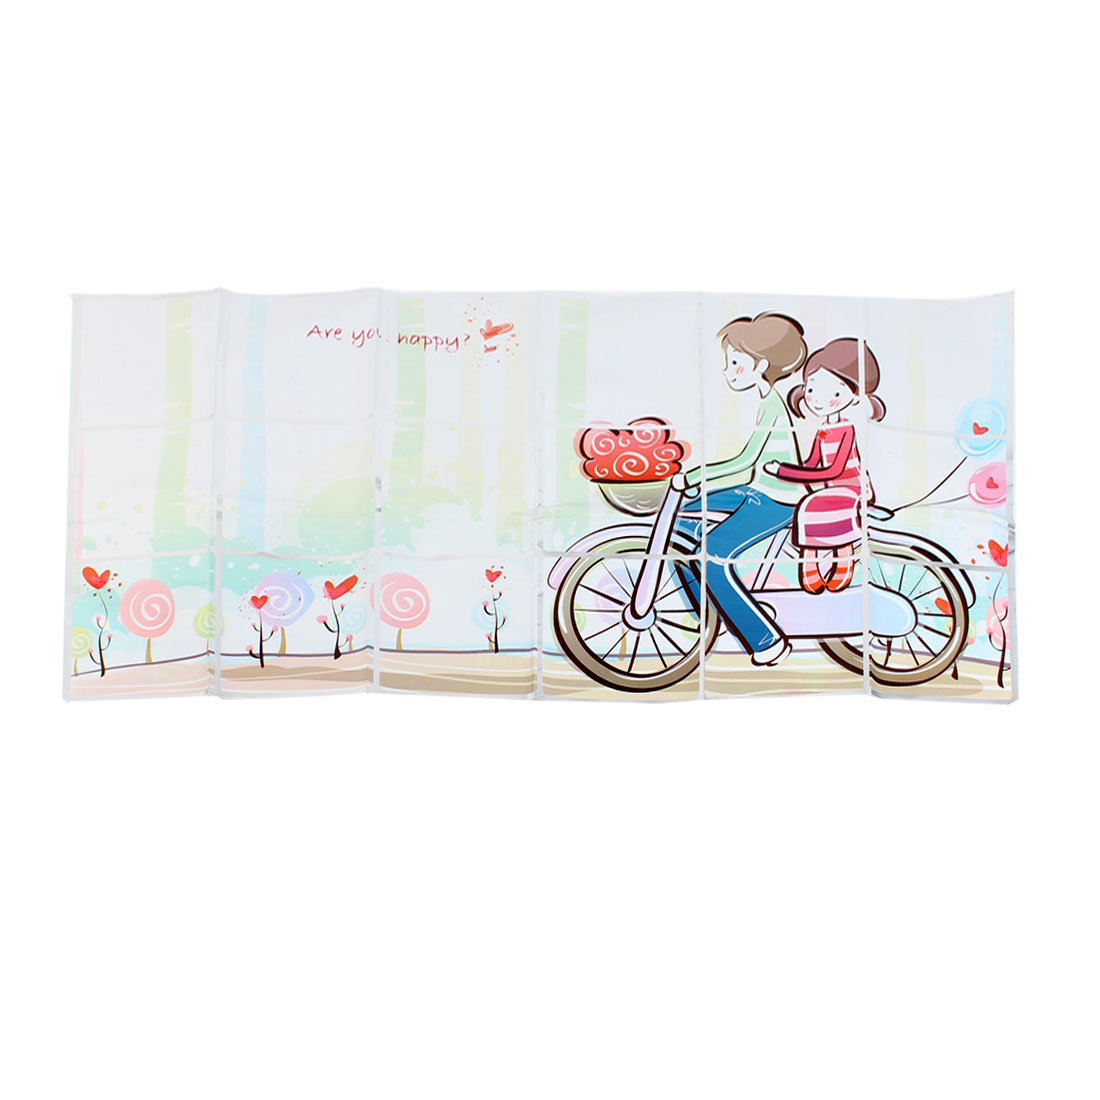 Home Kitchen 90cm x 45cm Grease Resistant Cartoon Boy Girl Pattern Decal Sticker